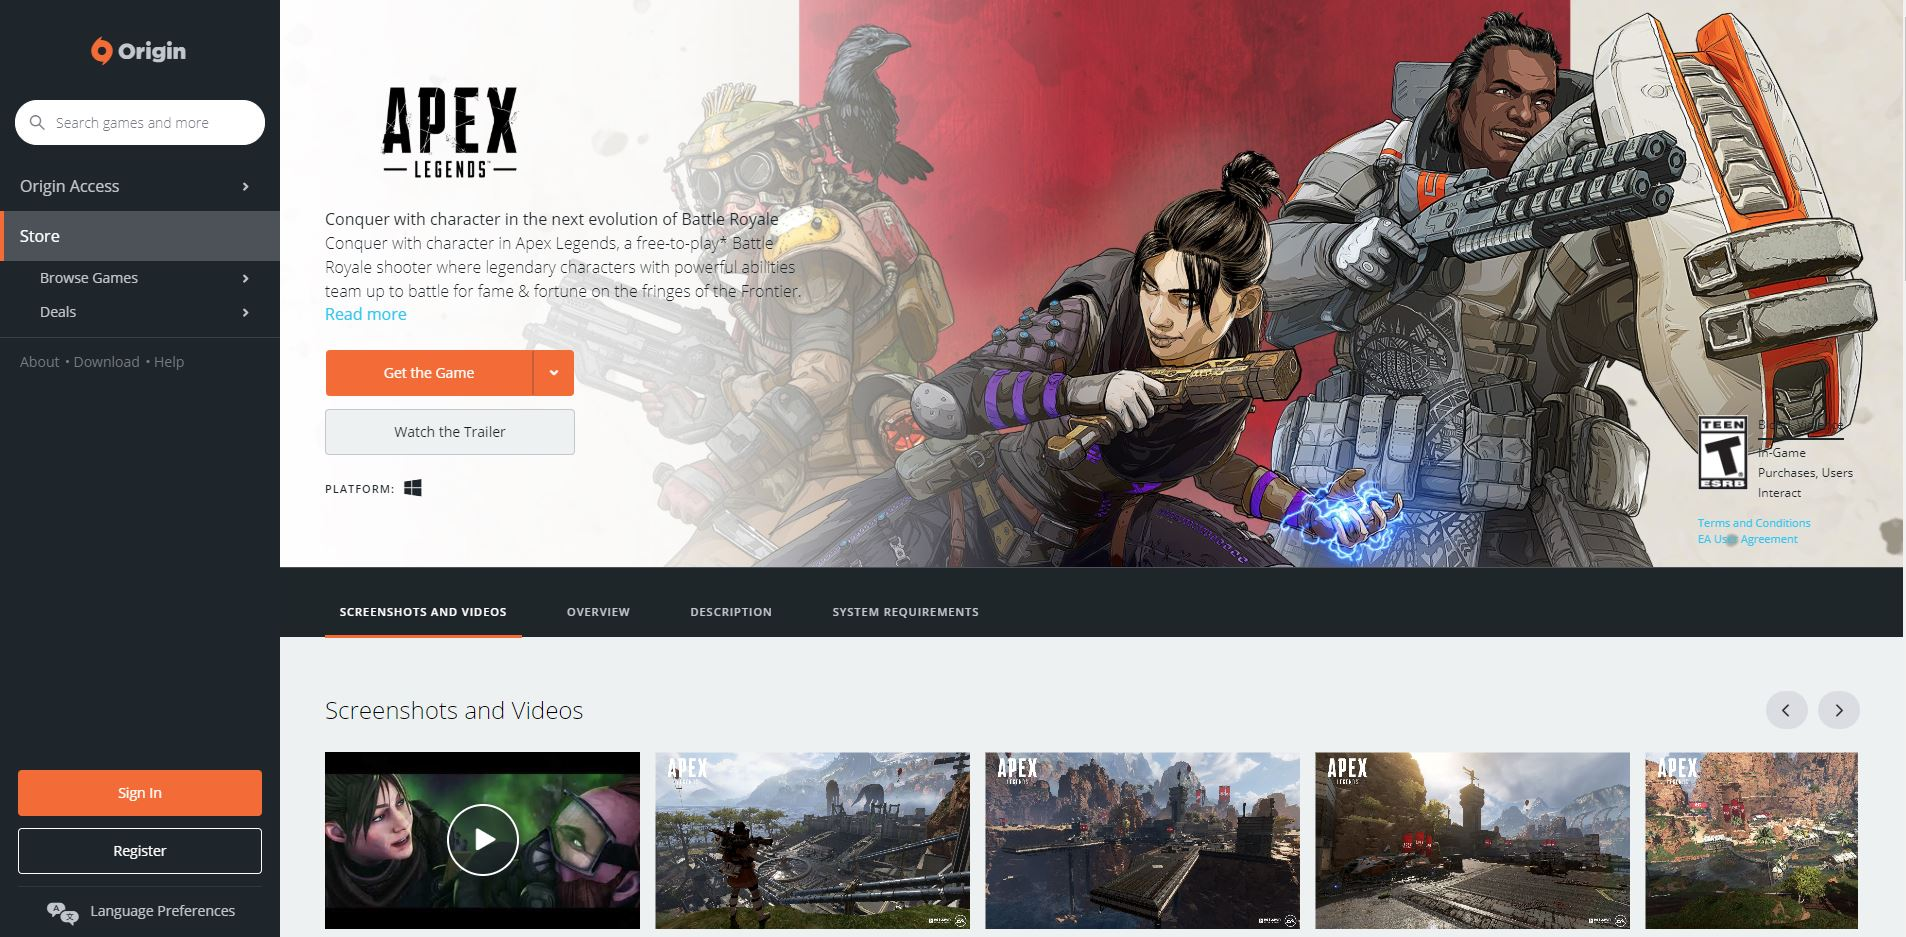 To download Apex Legends for PC, you can visit the game's official page on the Origin website, or find it in the Origin Store.